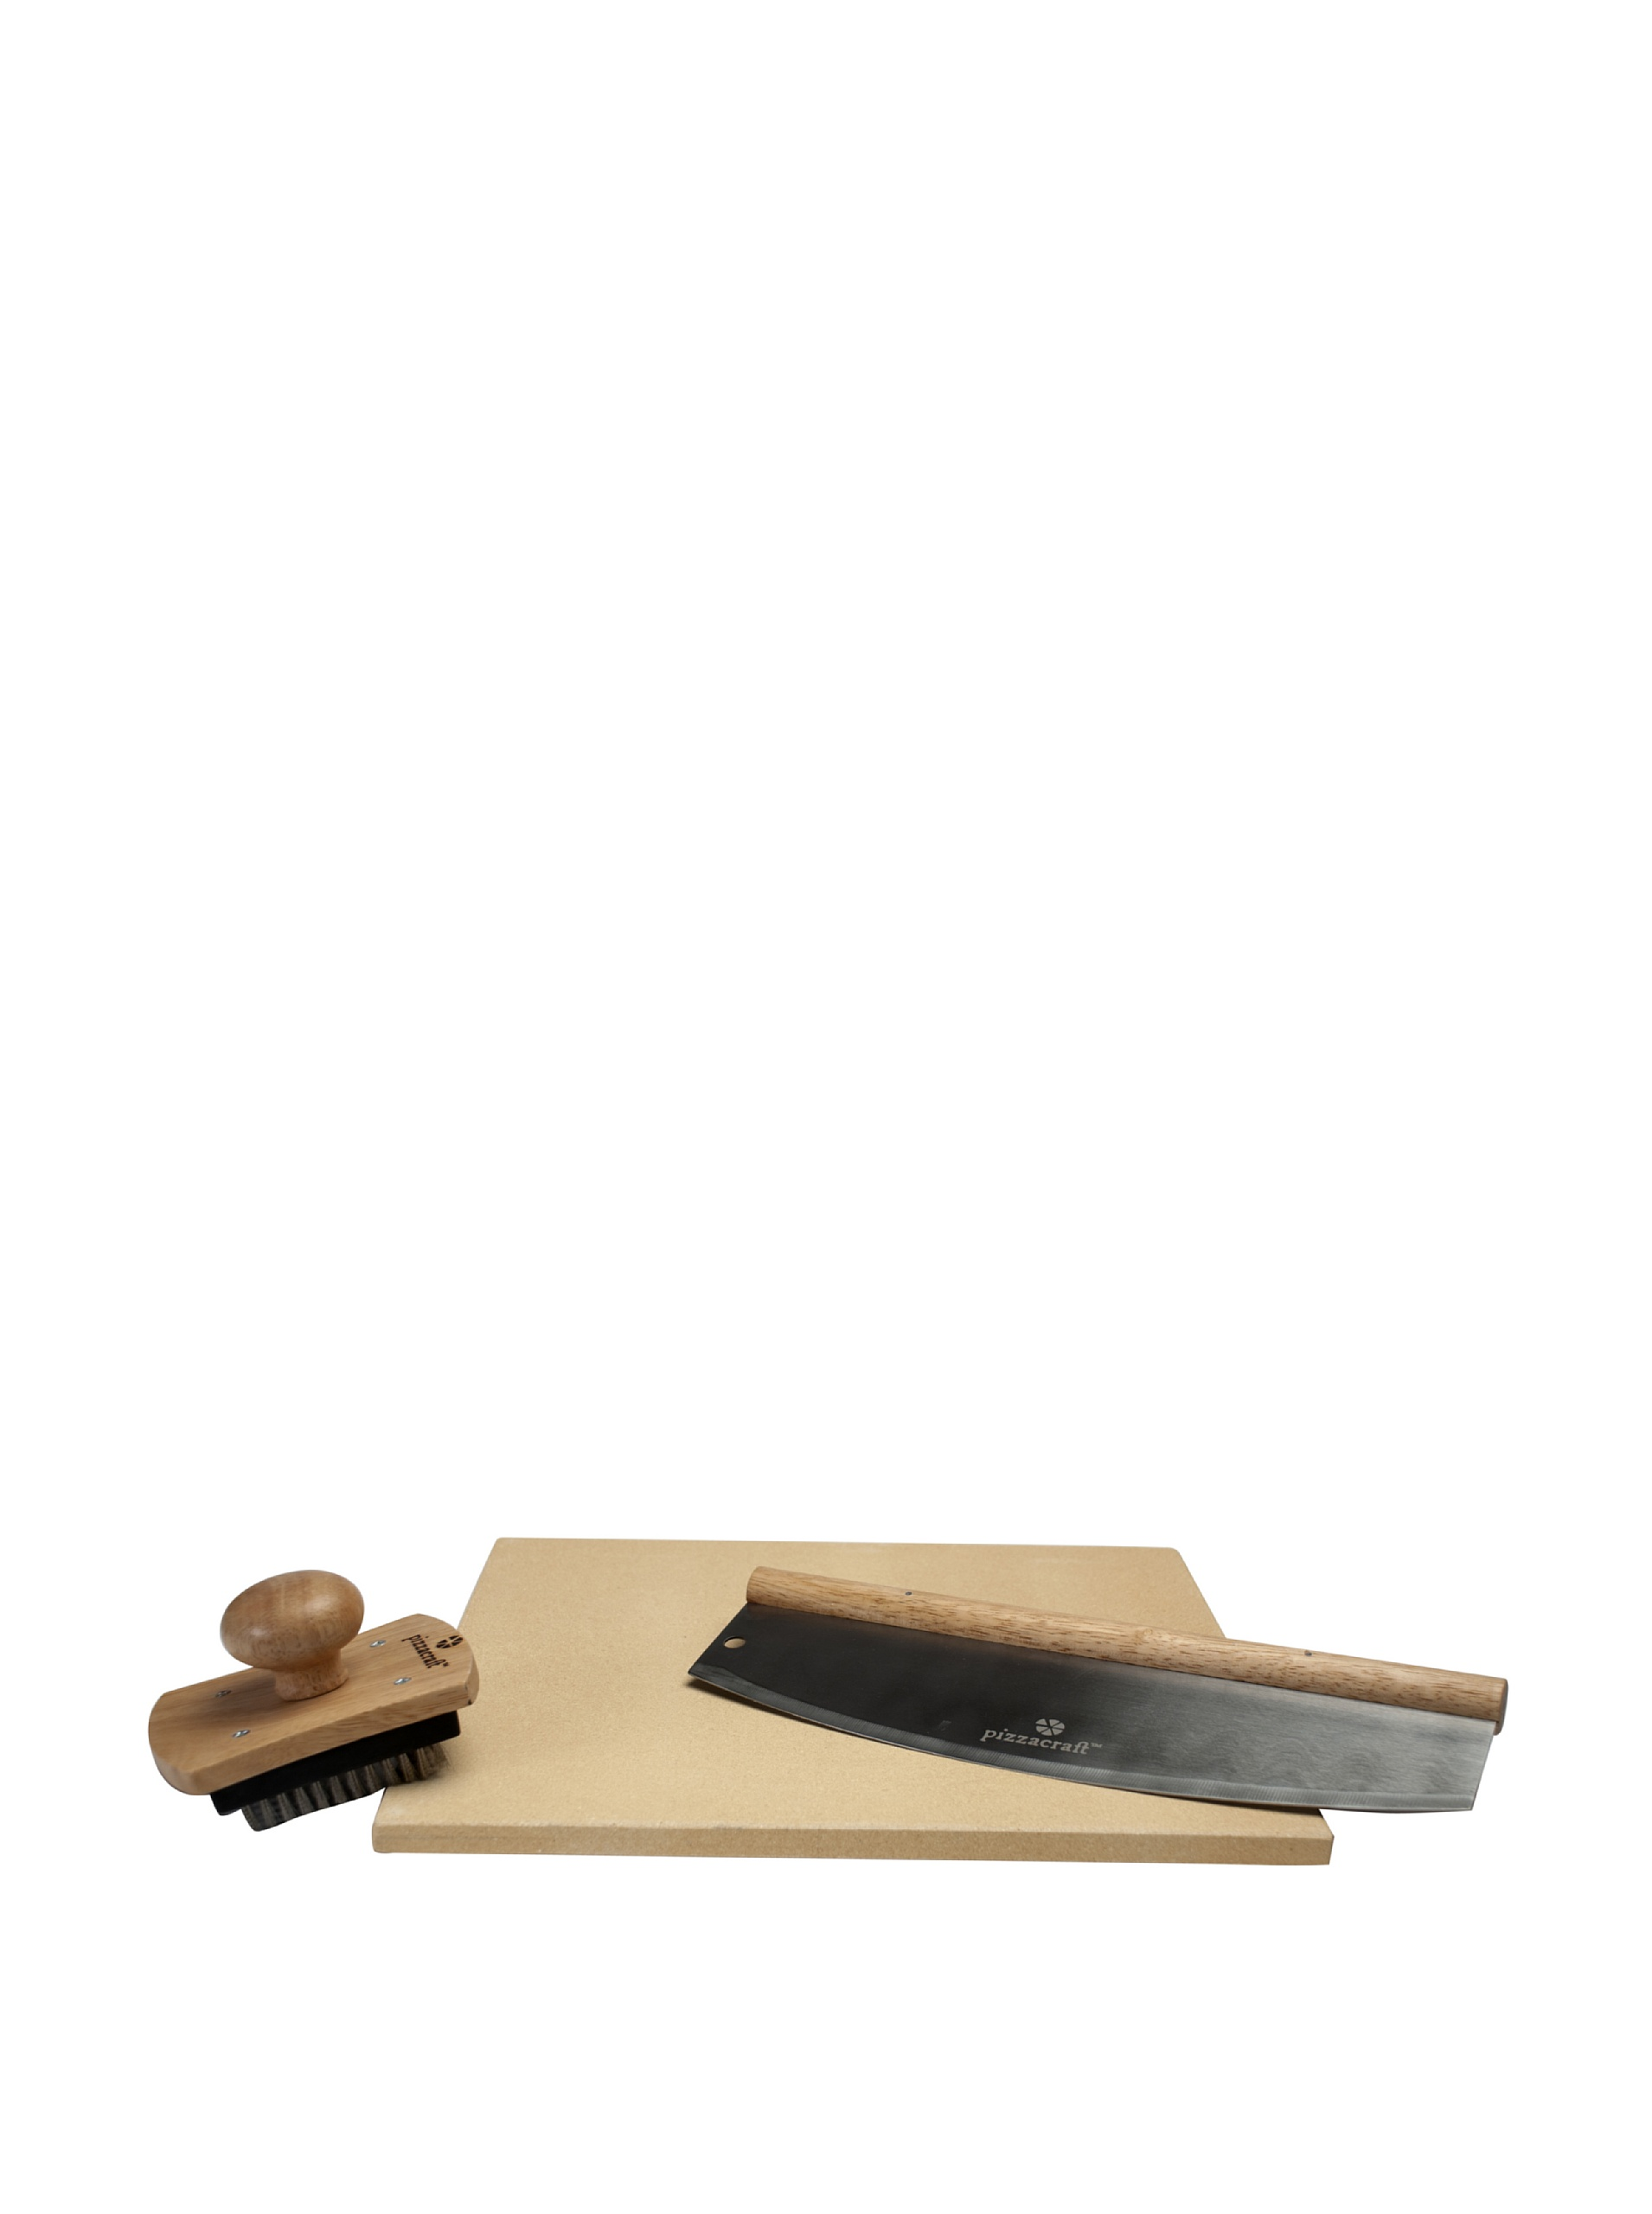 Pizzacraft Pizza On The Grill: Square Pizza Stone Set (Natural)